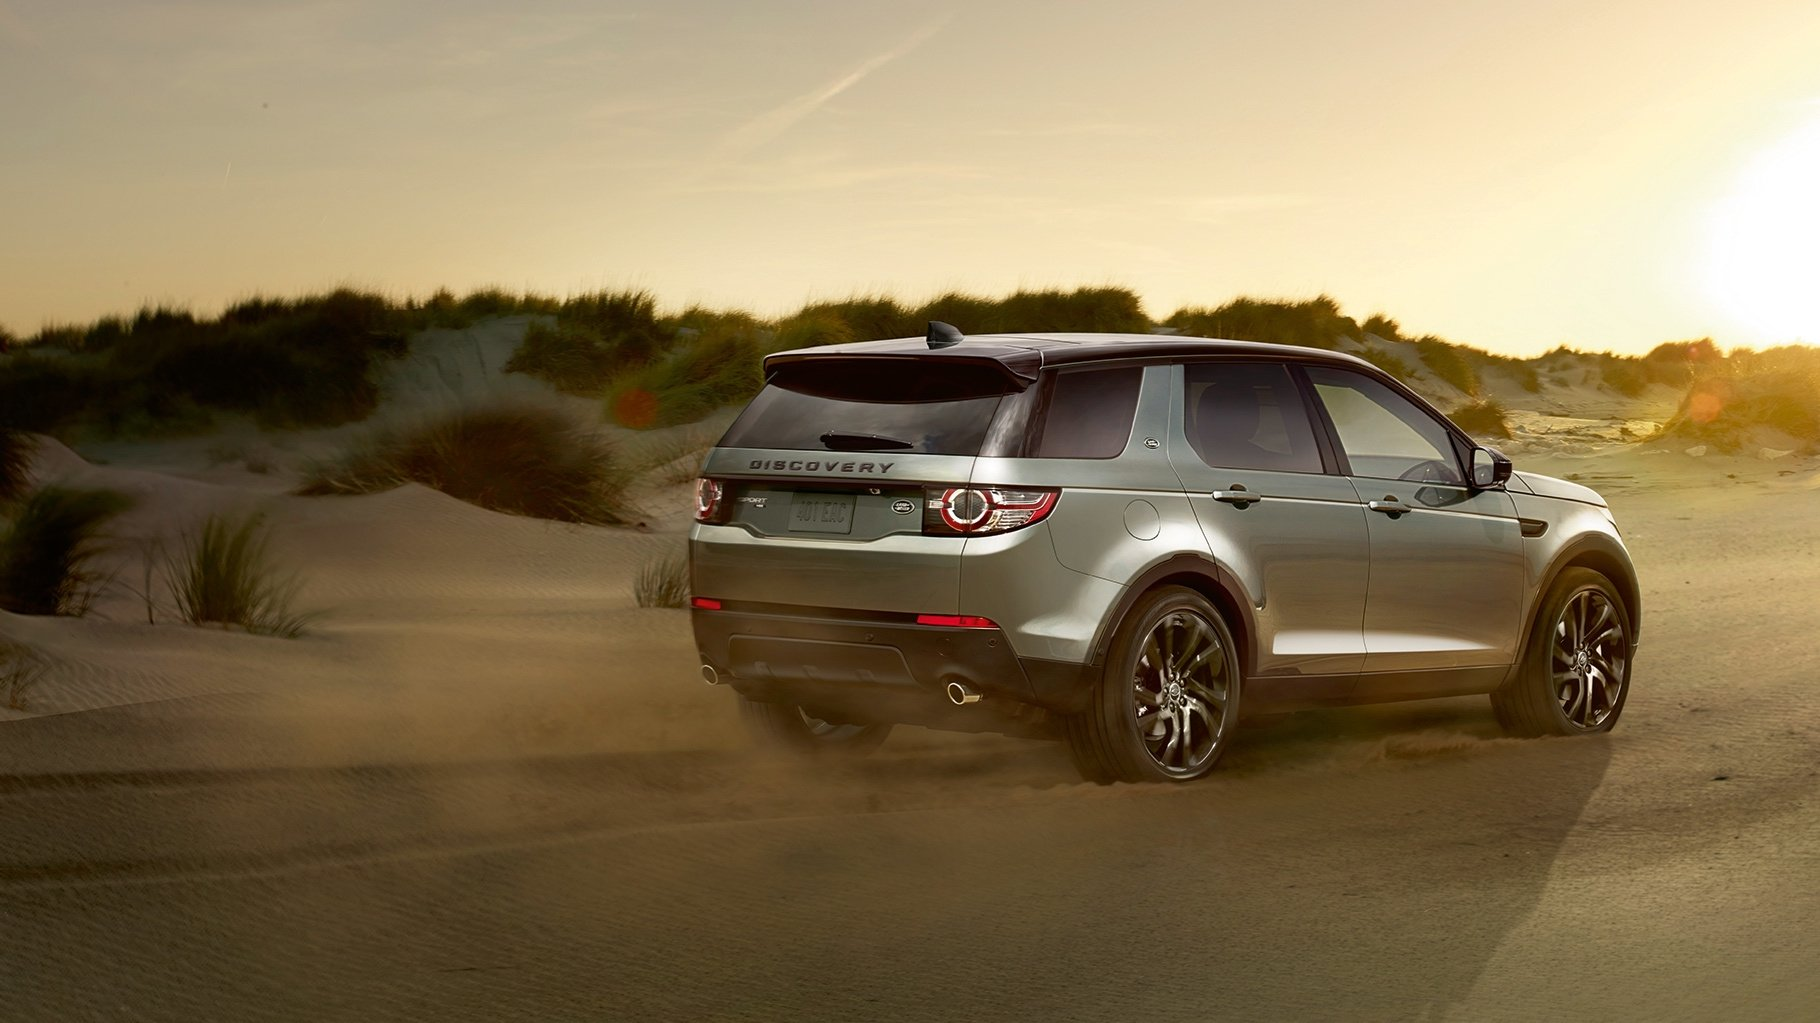 2017 Land Rover Discovery Sport driving down a dirt road